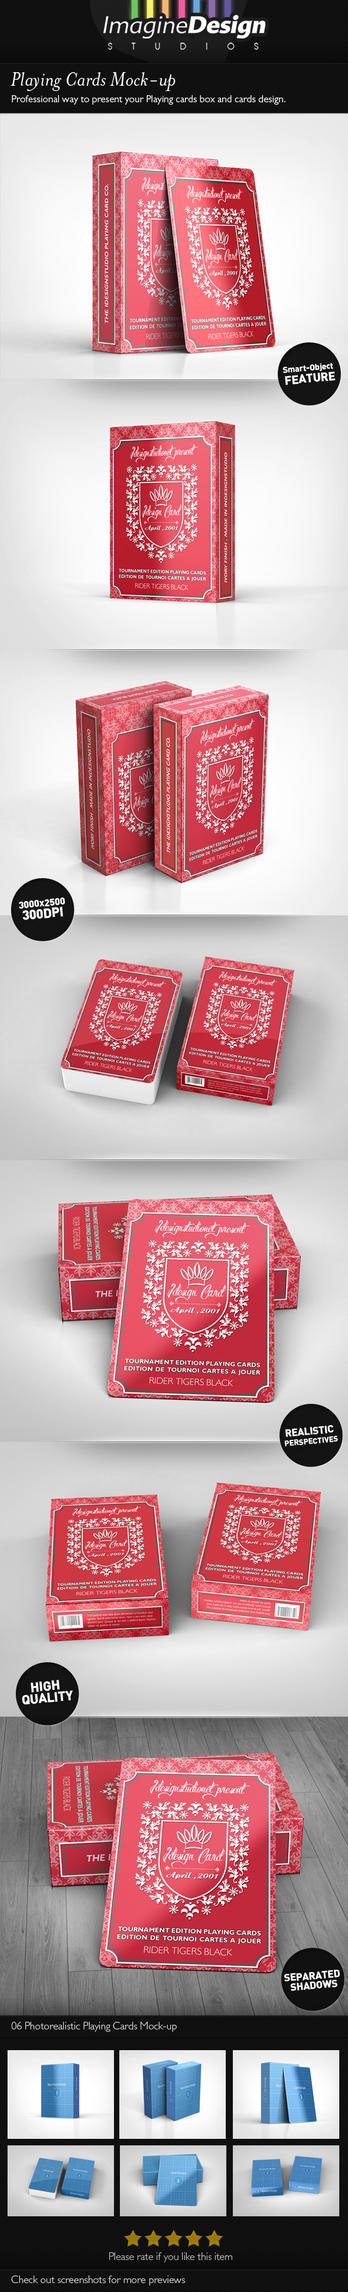 Playing Cards Mock-up by idesignstudio